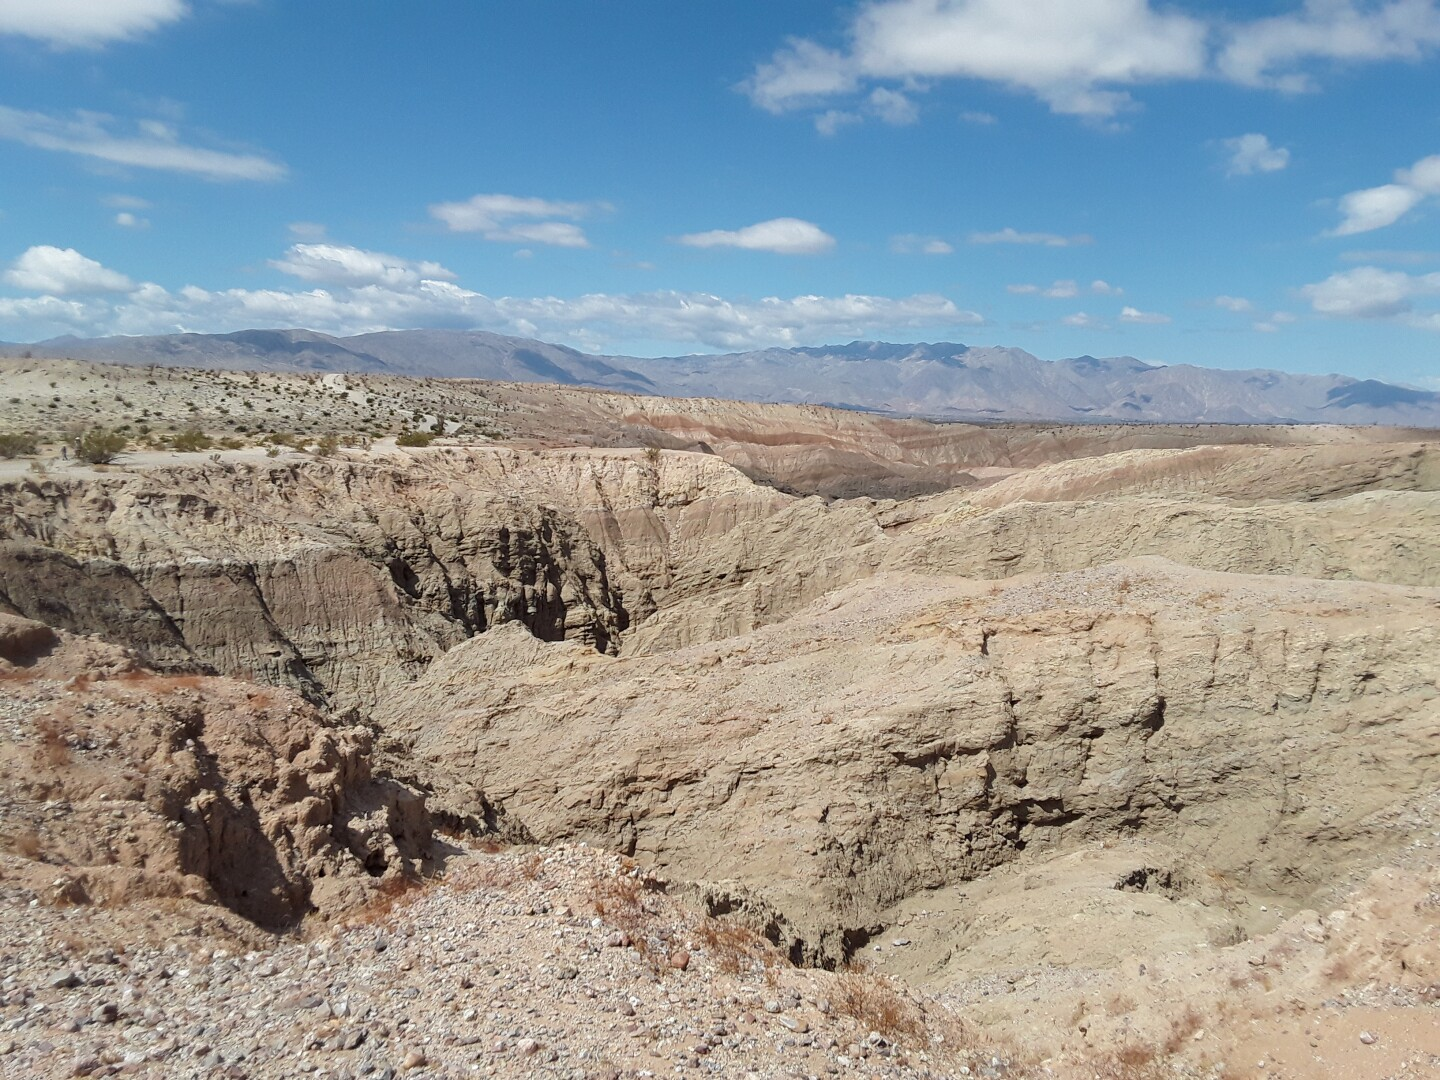 The view at the Slot Canyon Overlook.